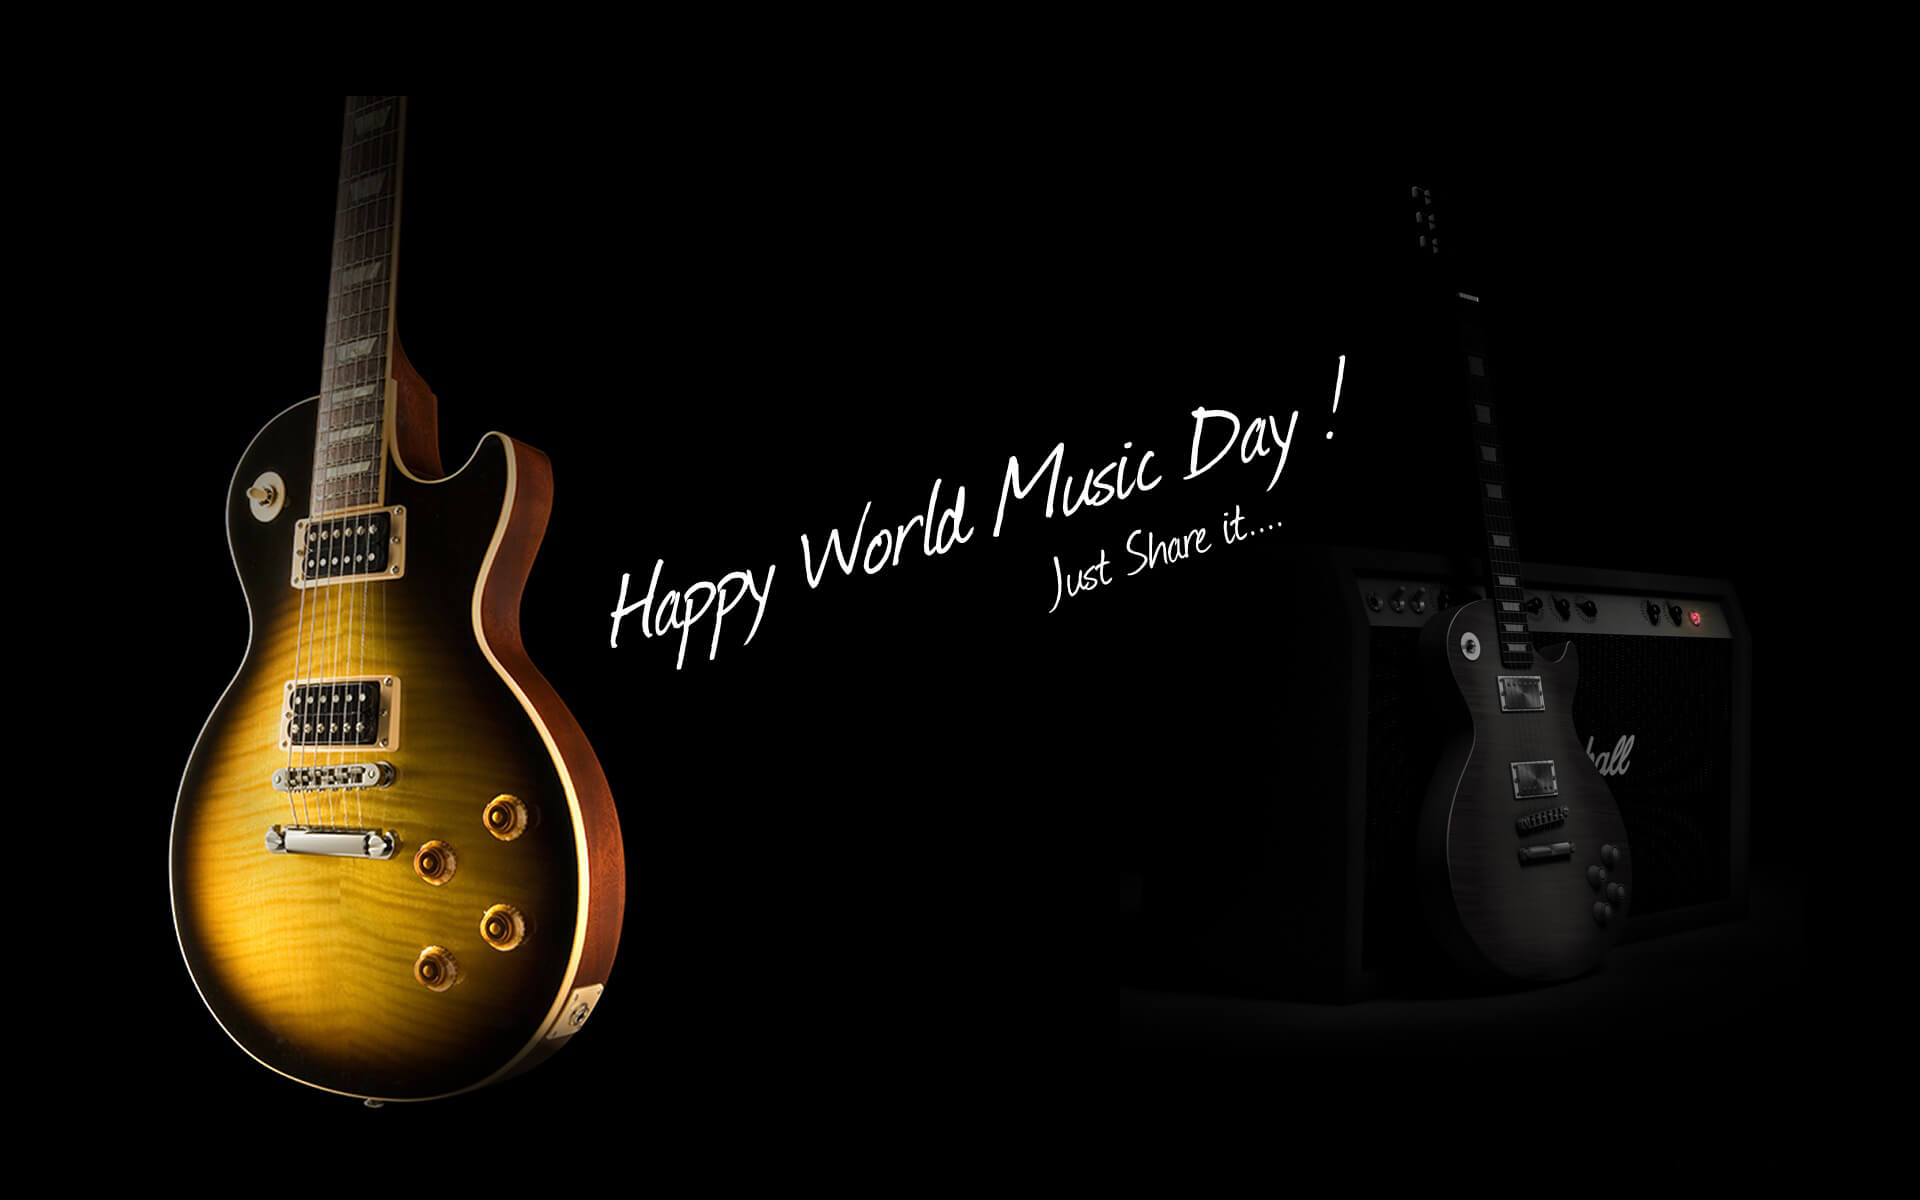 world music day guitar wallpaper